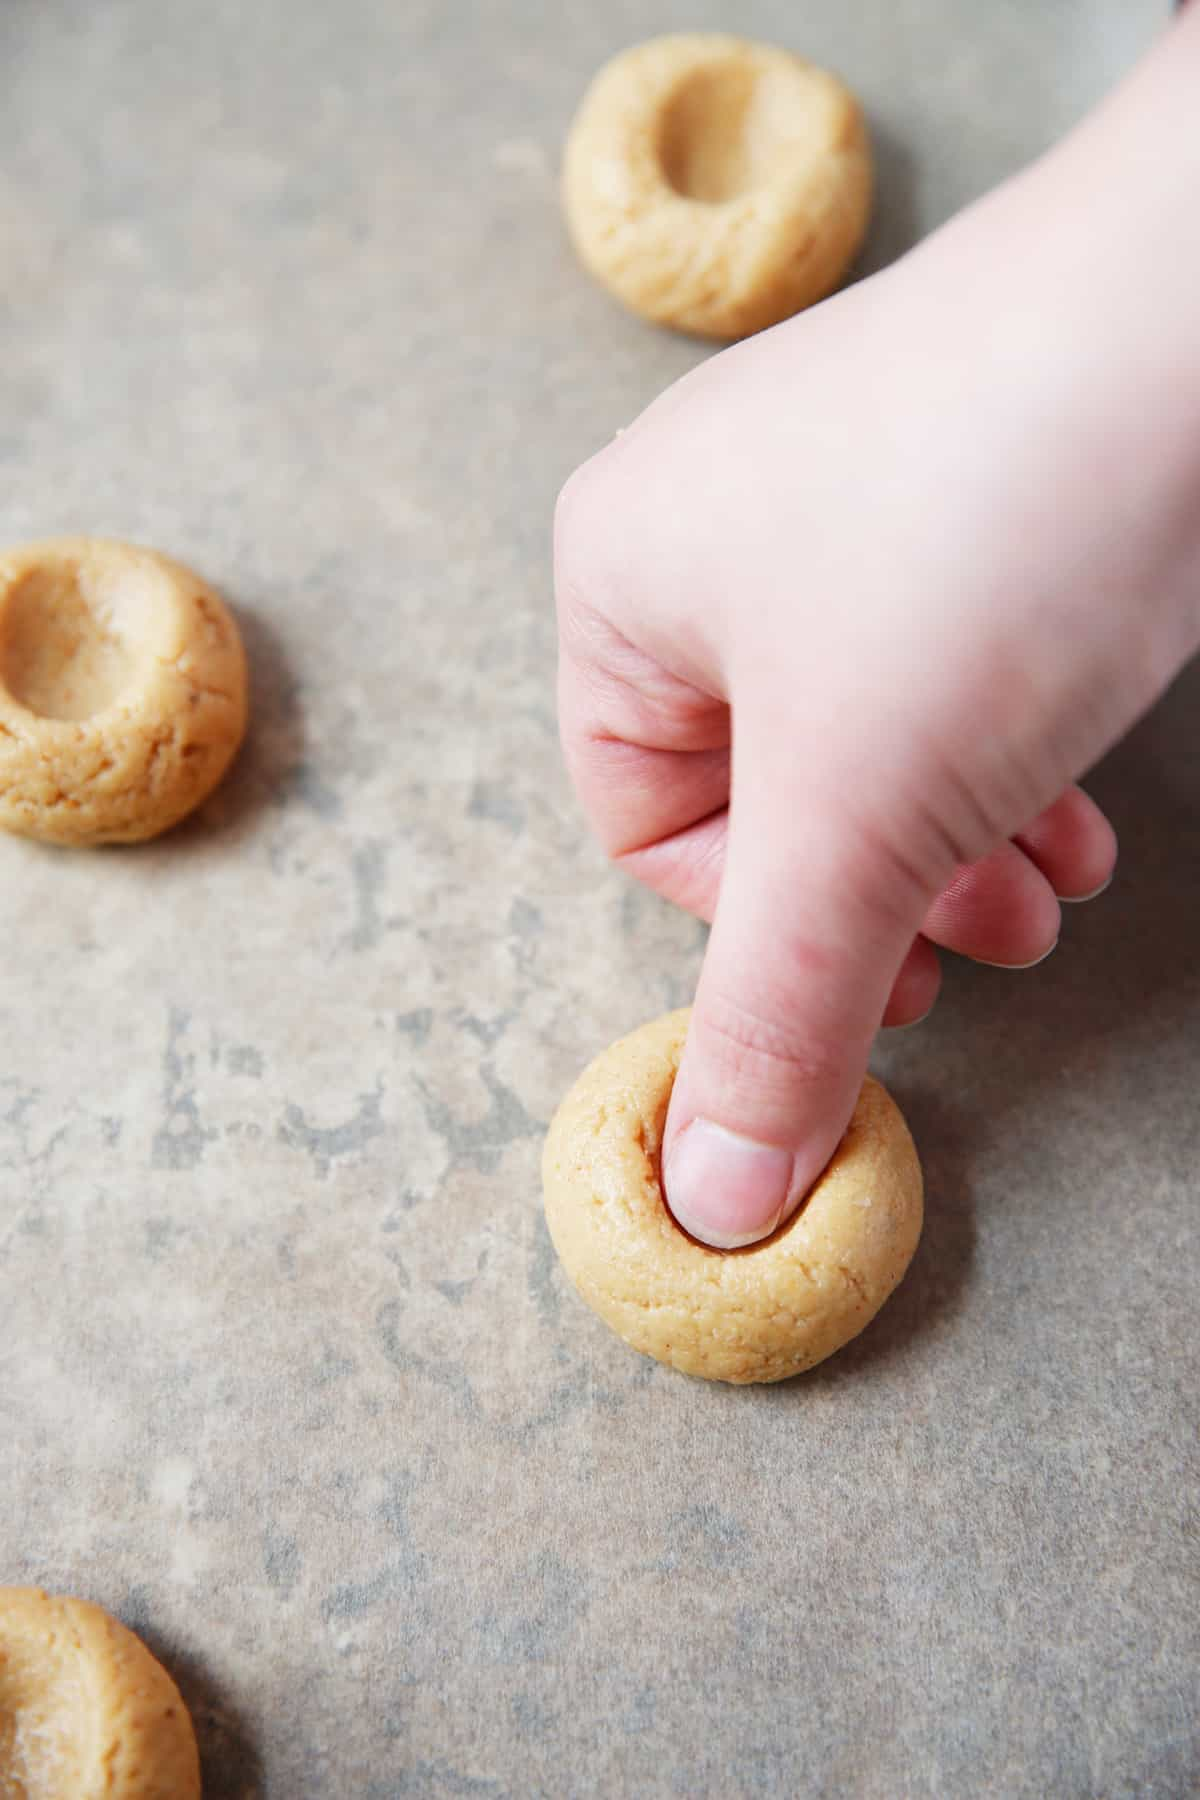 Making a thumbprint in cookie dough.